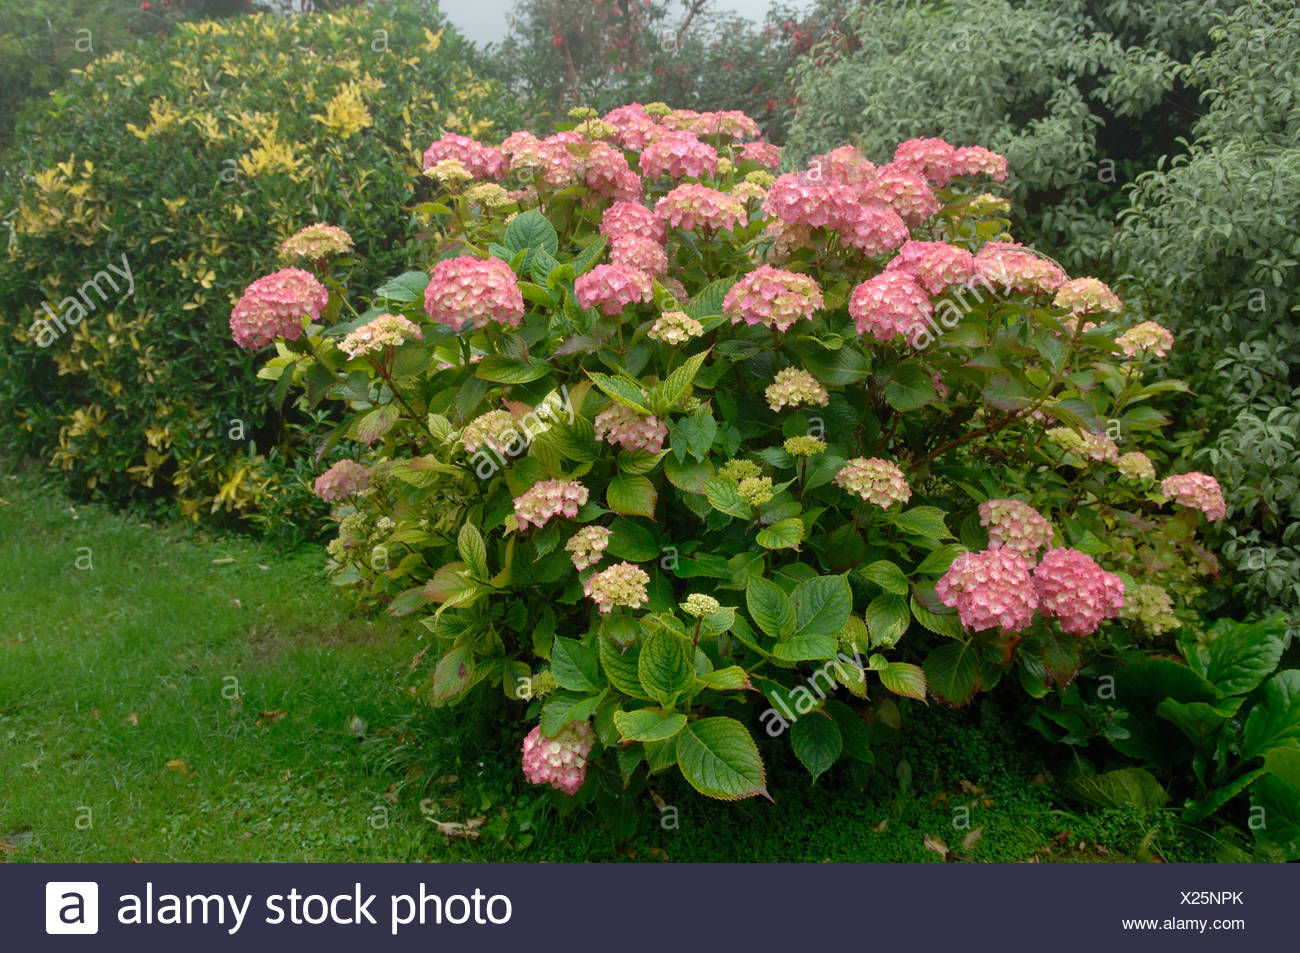 Flowering red hydrangea shrub showing chlorosis caused by lime induced iron Fe deficiency - Stock Image